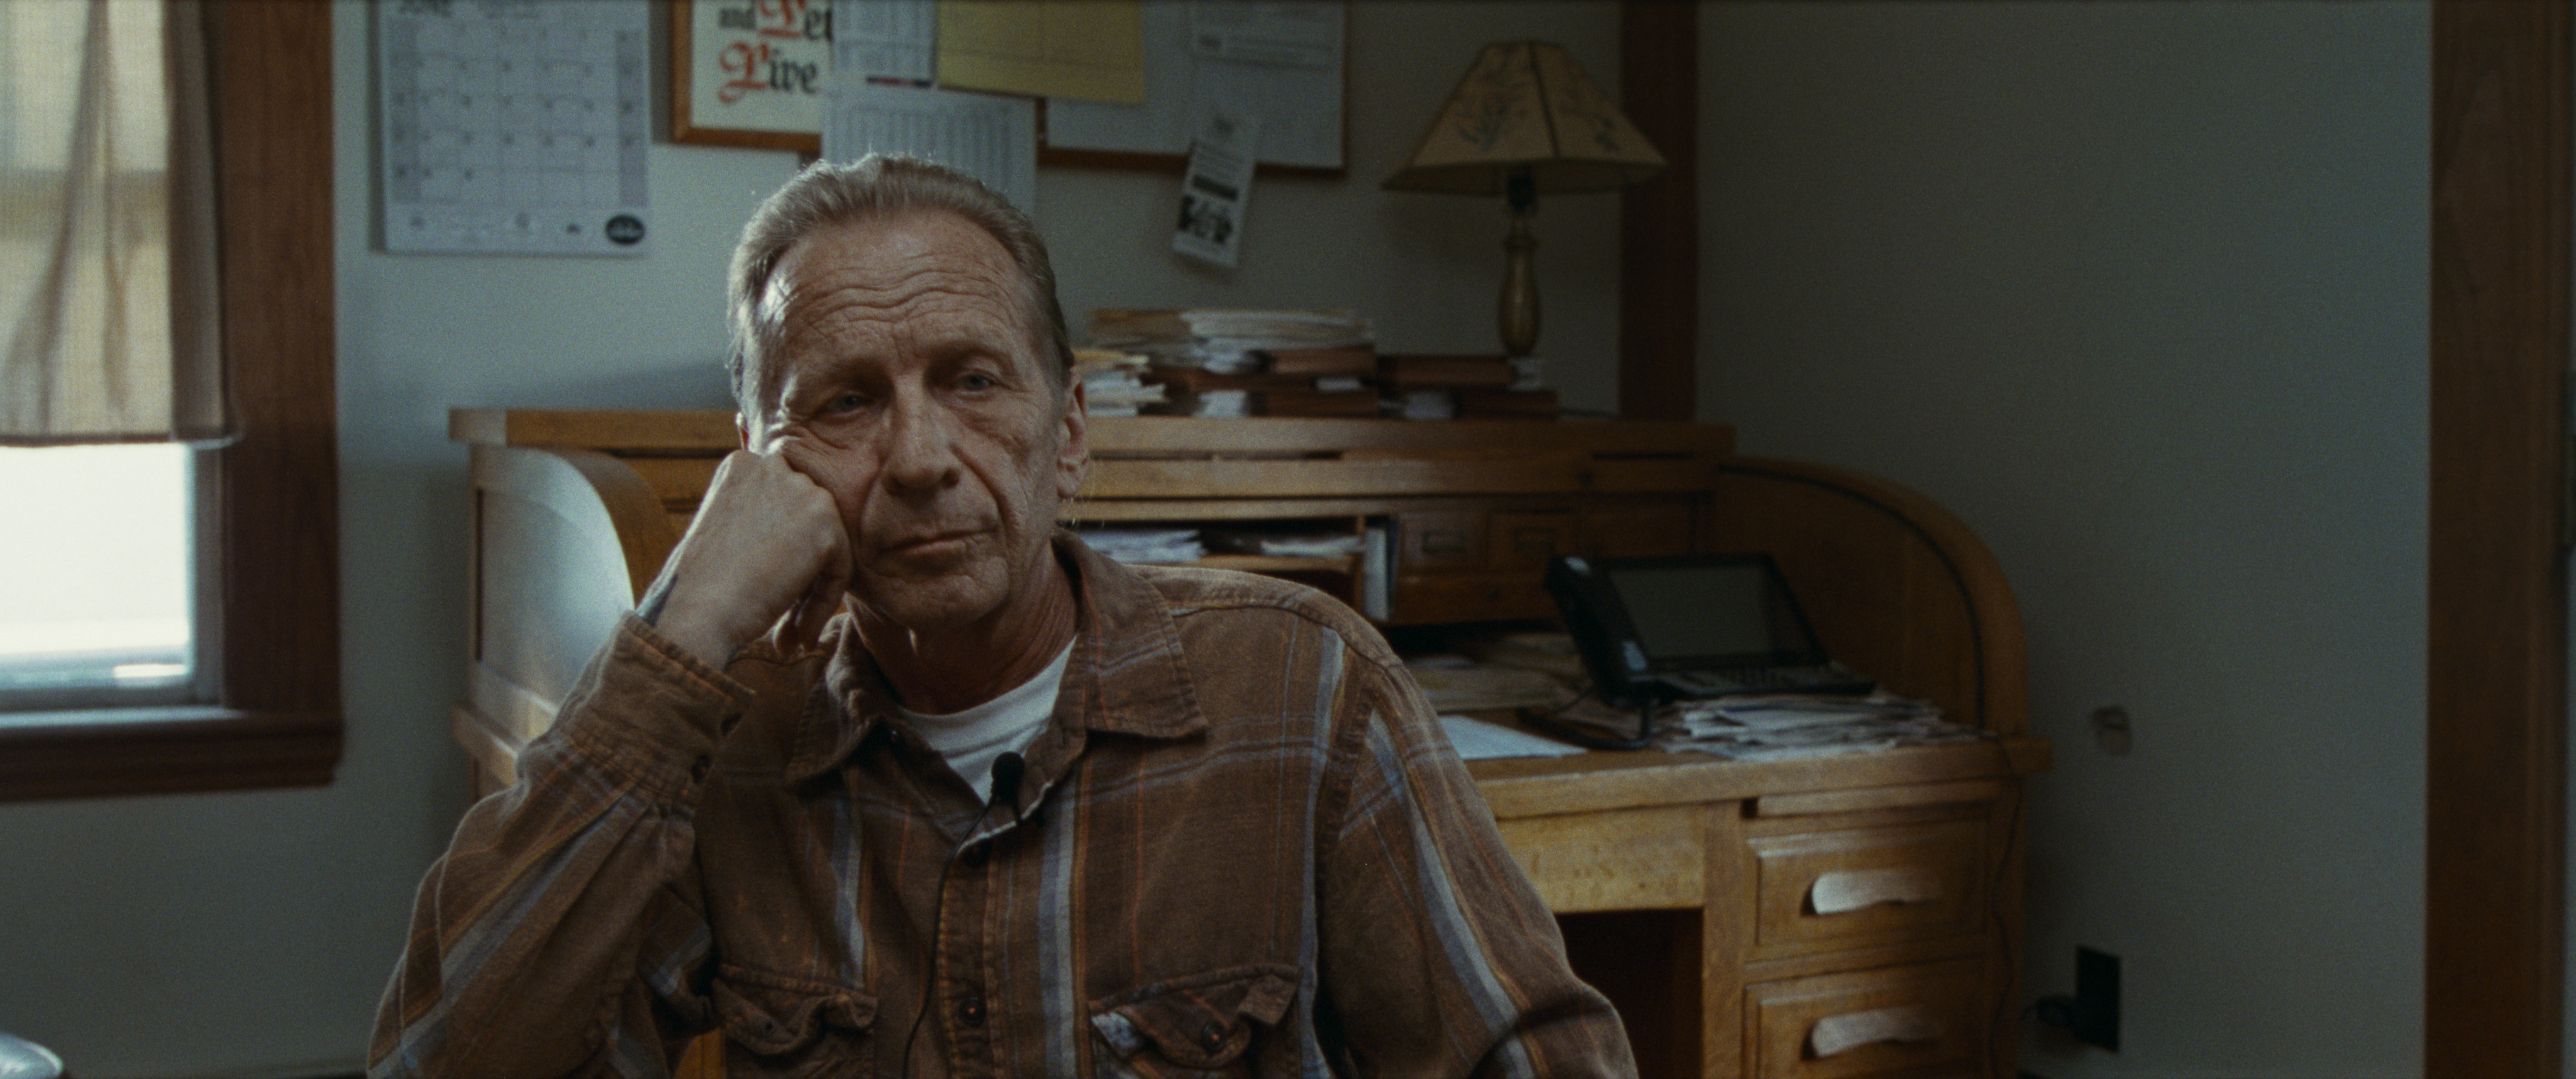 Image is from the film 'Sound of Metal (2019). A man in his fifties sits in a office with his head resting against his fist. He is wearing a brown plaid shirt.